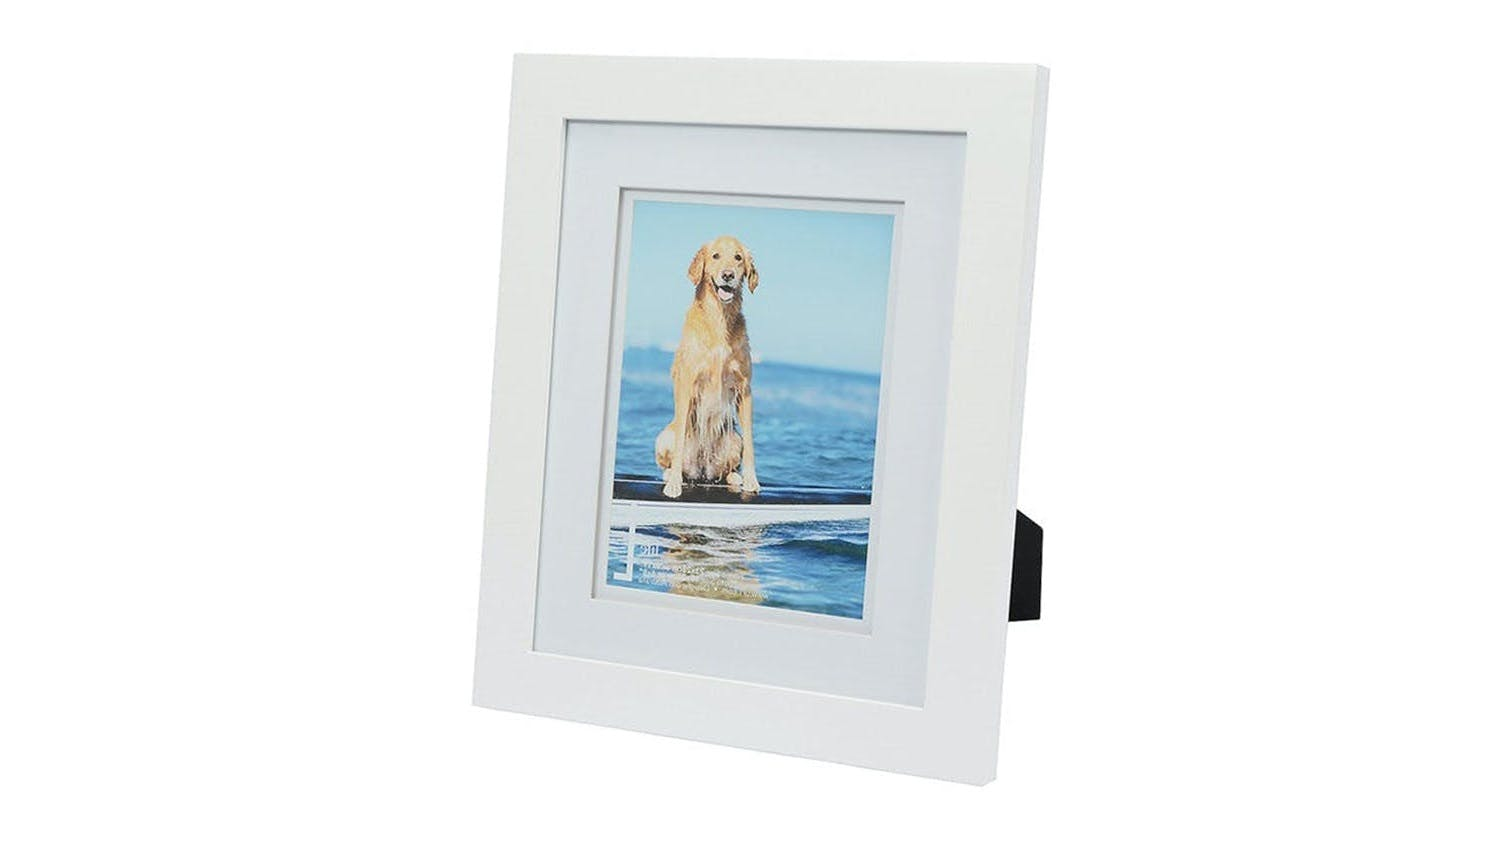 UR1 Life 9x11 with 6x8 Opening Photo Frame - White